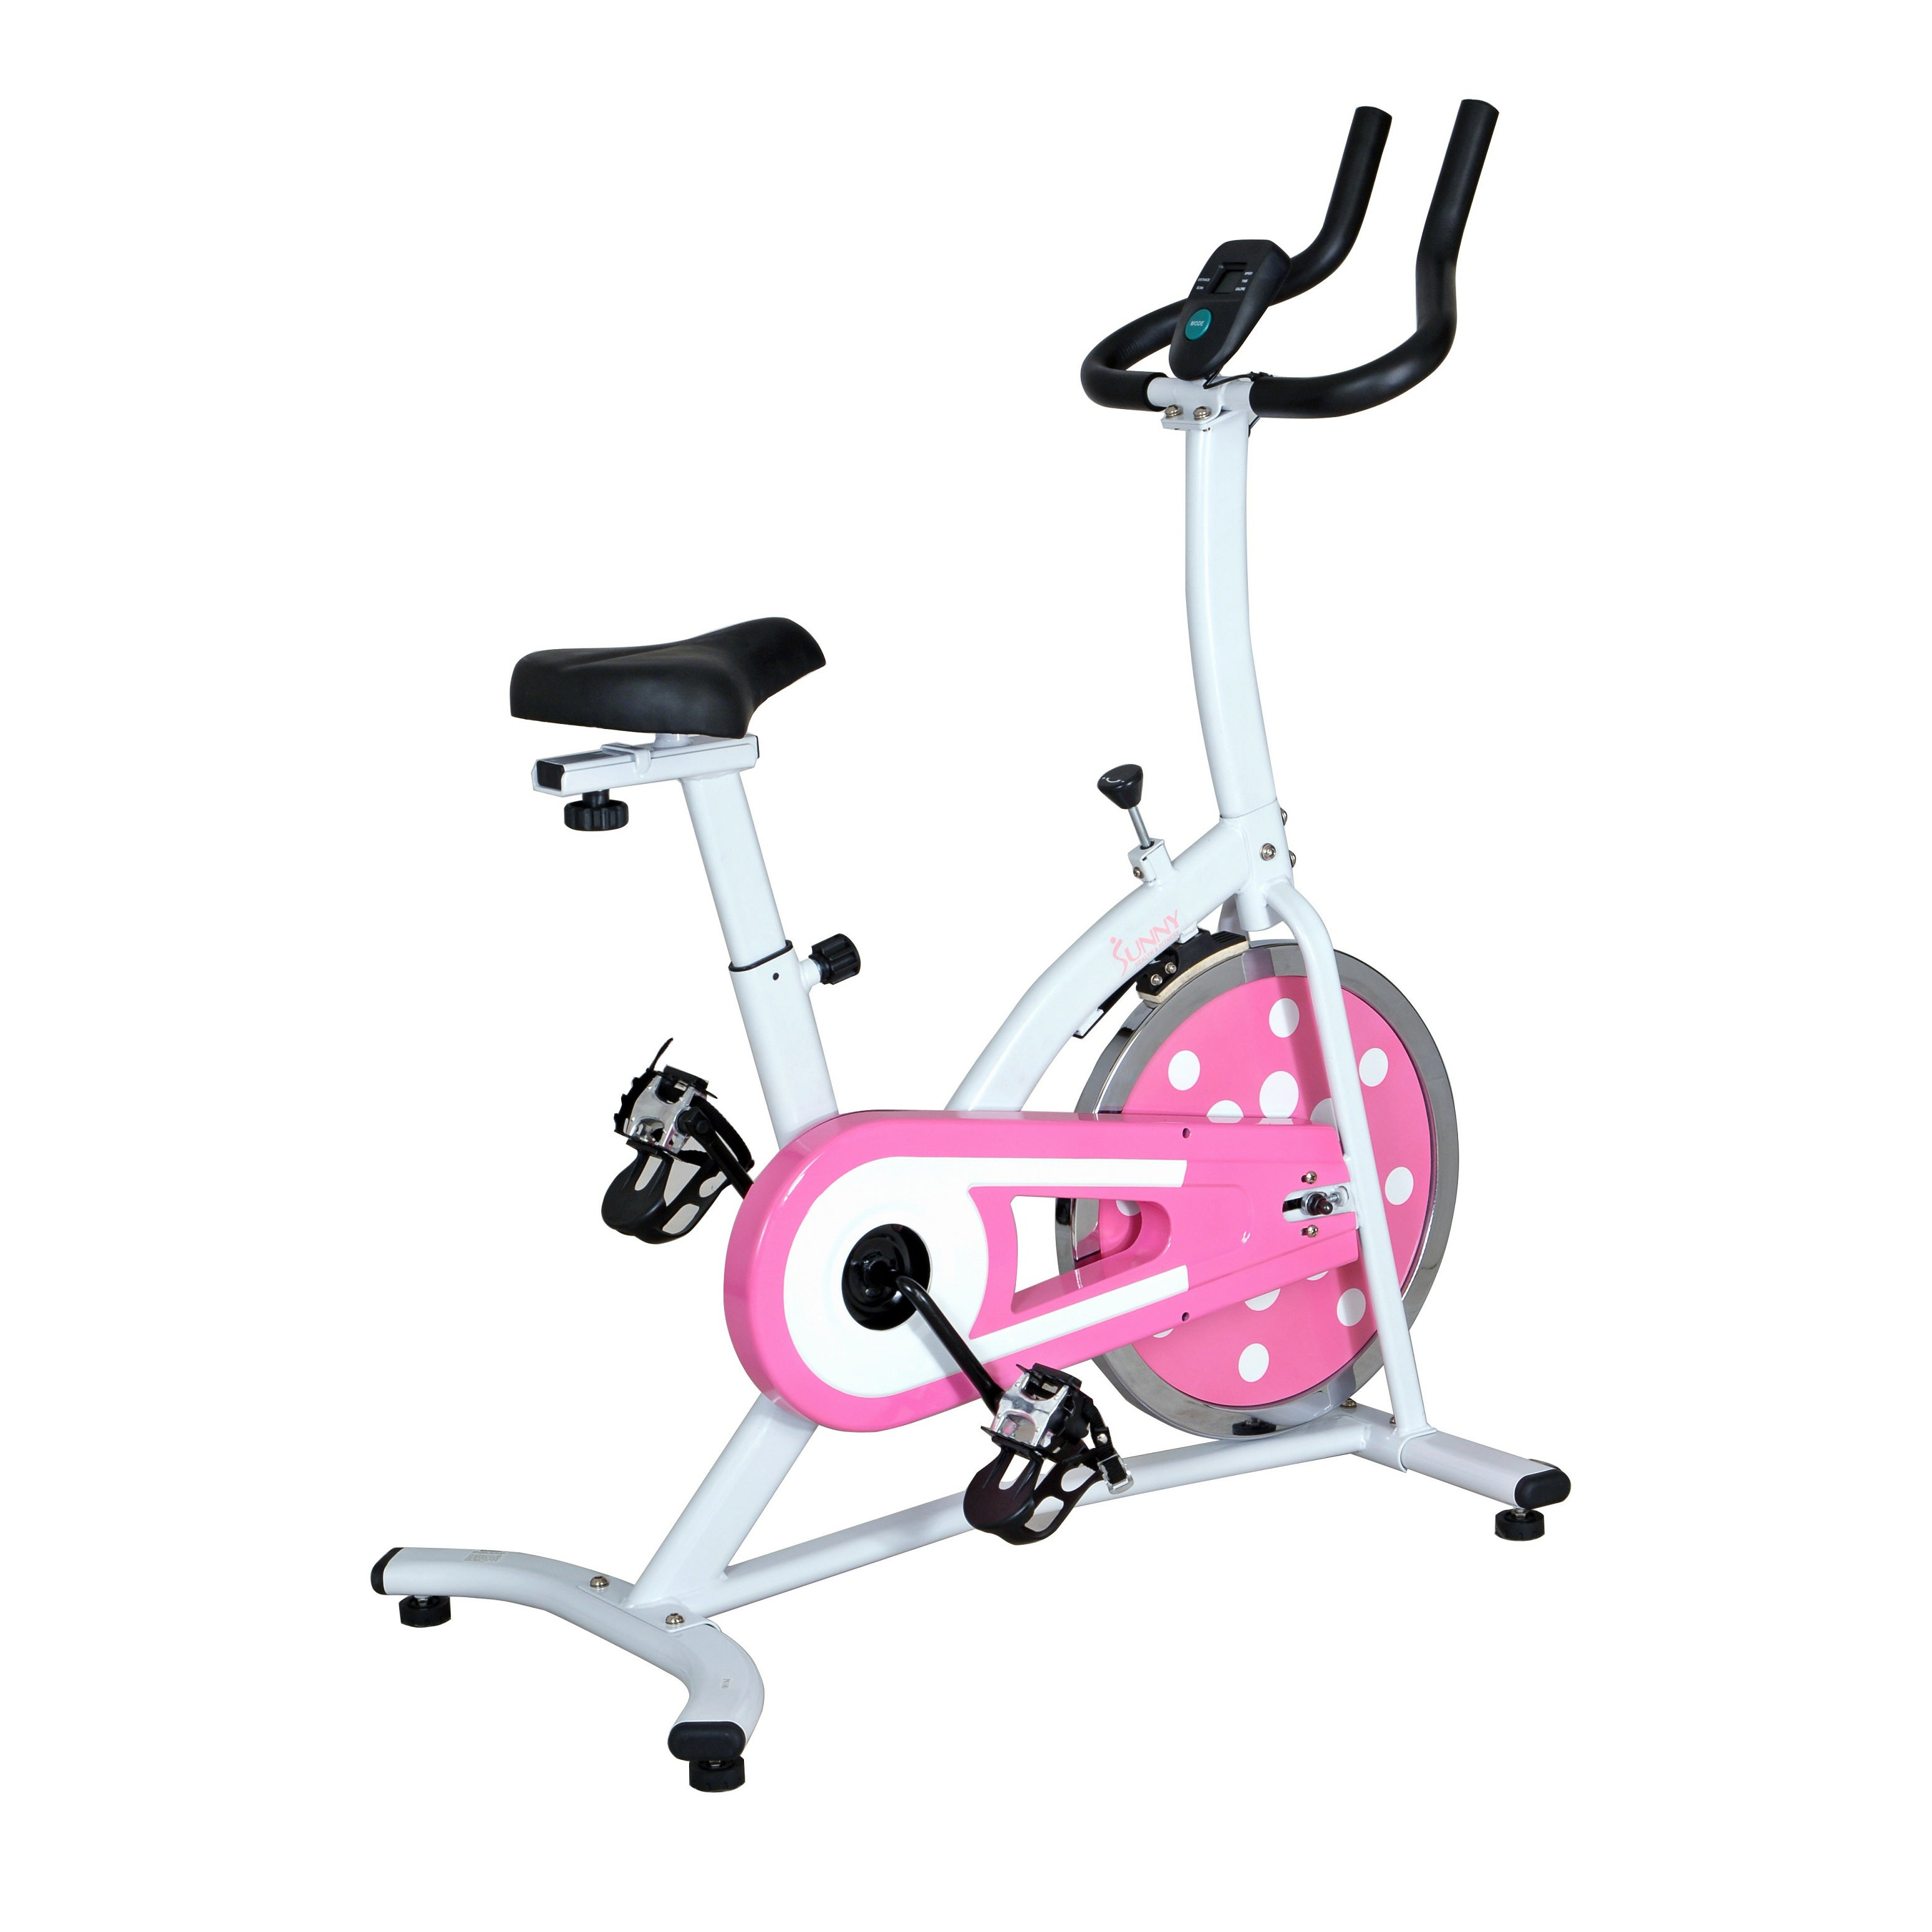 Sunny Health&Fitness Sunny Pink Indoor Cycling Bike at Sears.com